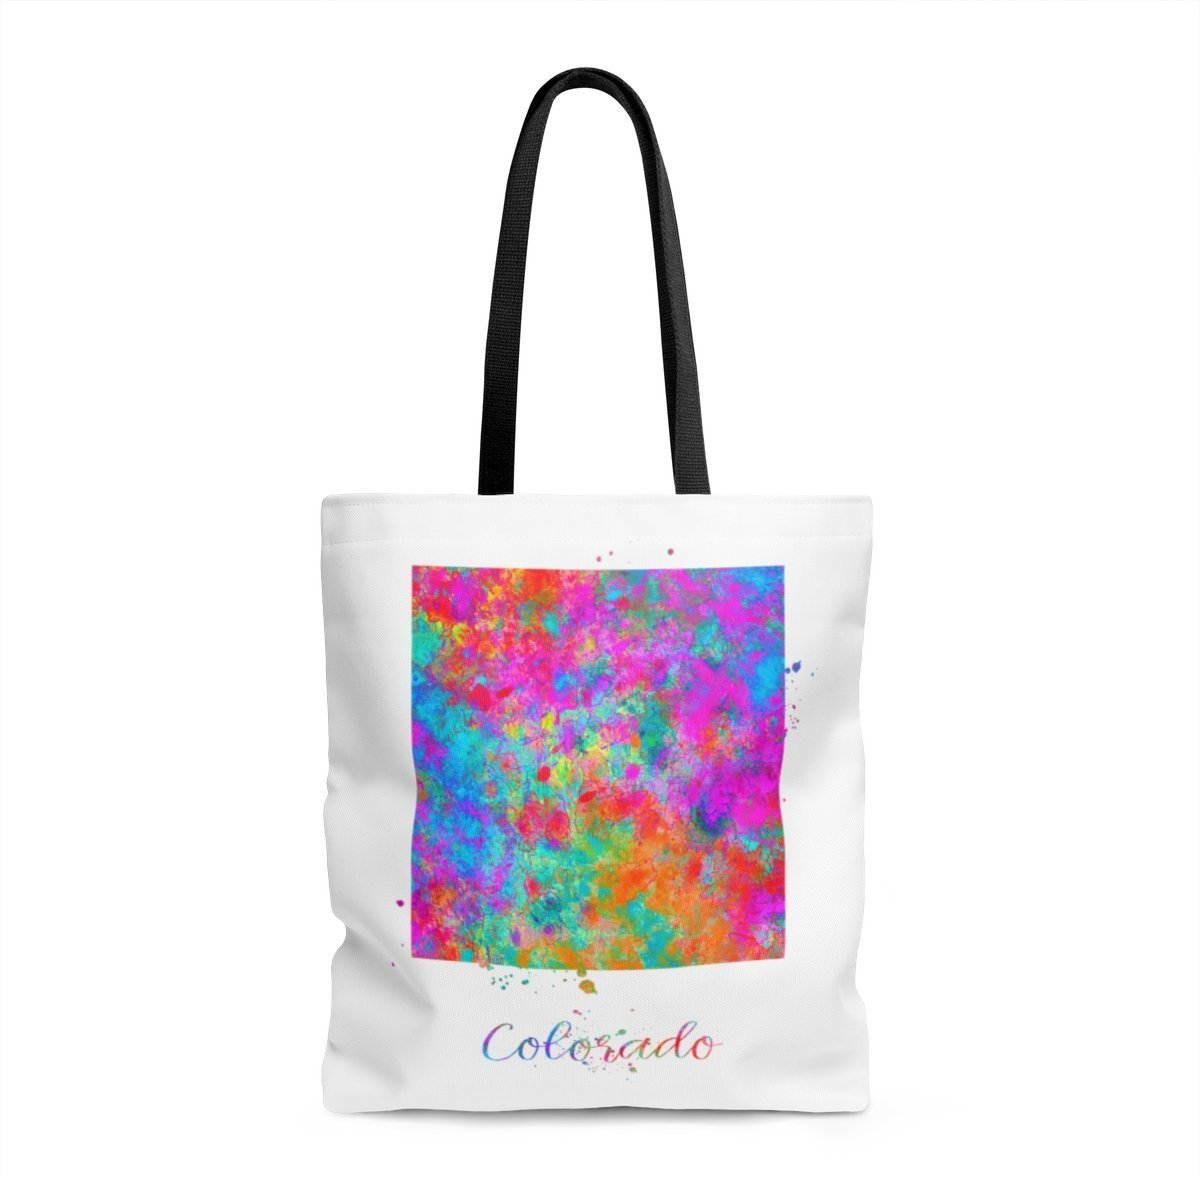 Colorado Map Tote Bag, Books Bag, Beach Bag, Shopping Bag